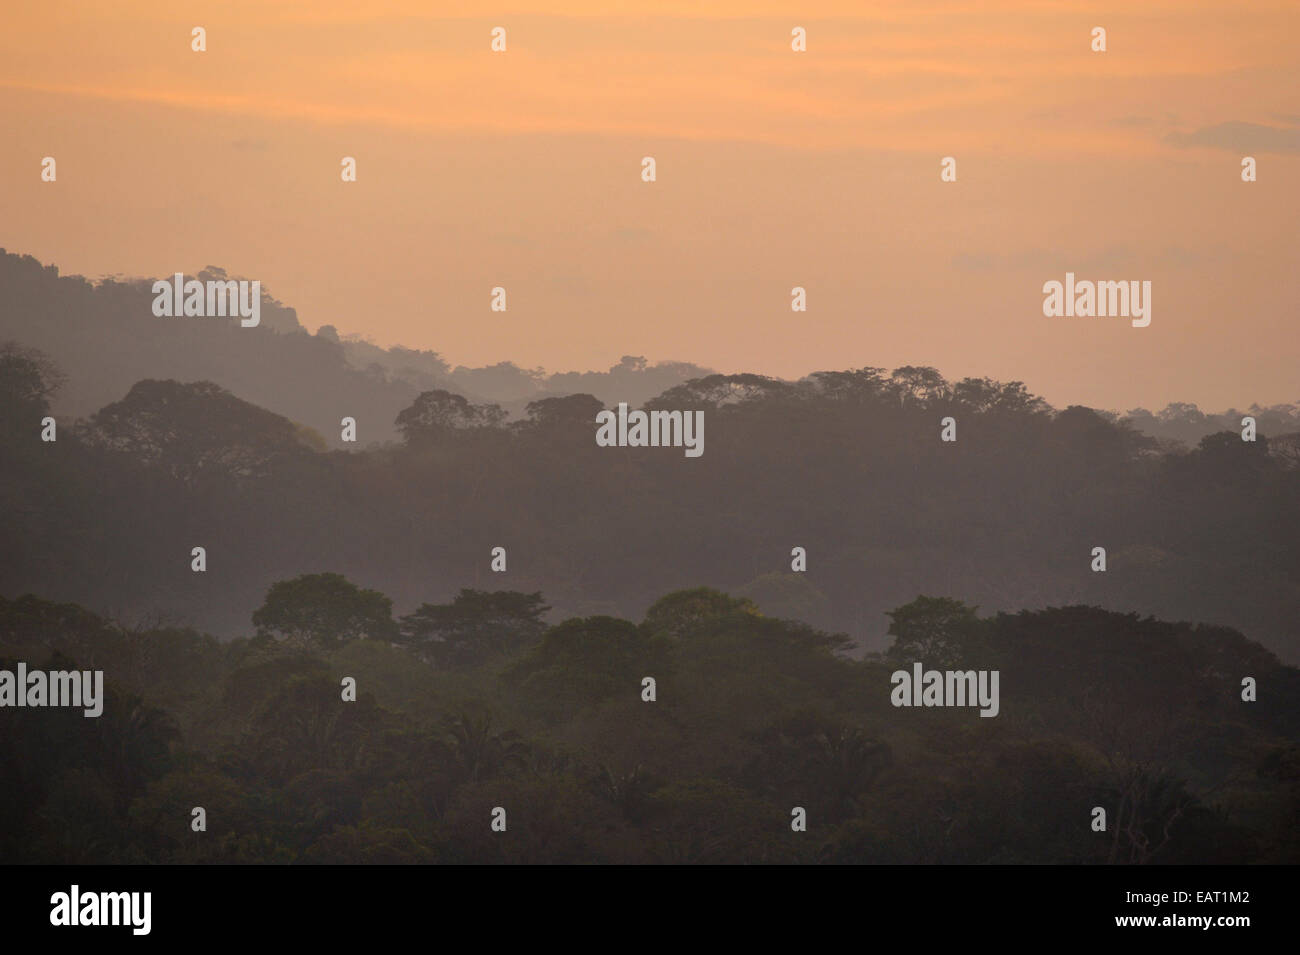 Sunrise View over Jungle Canopy Panama Stock Photo